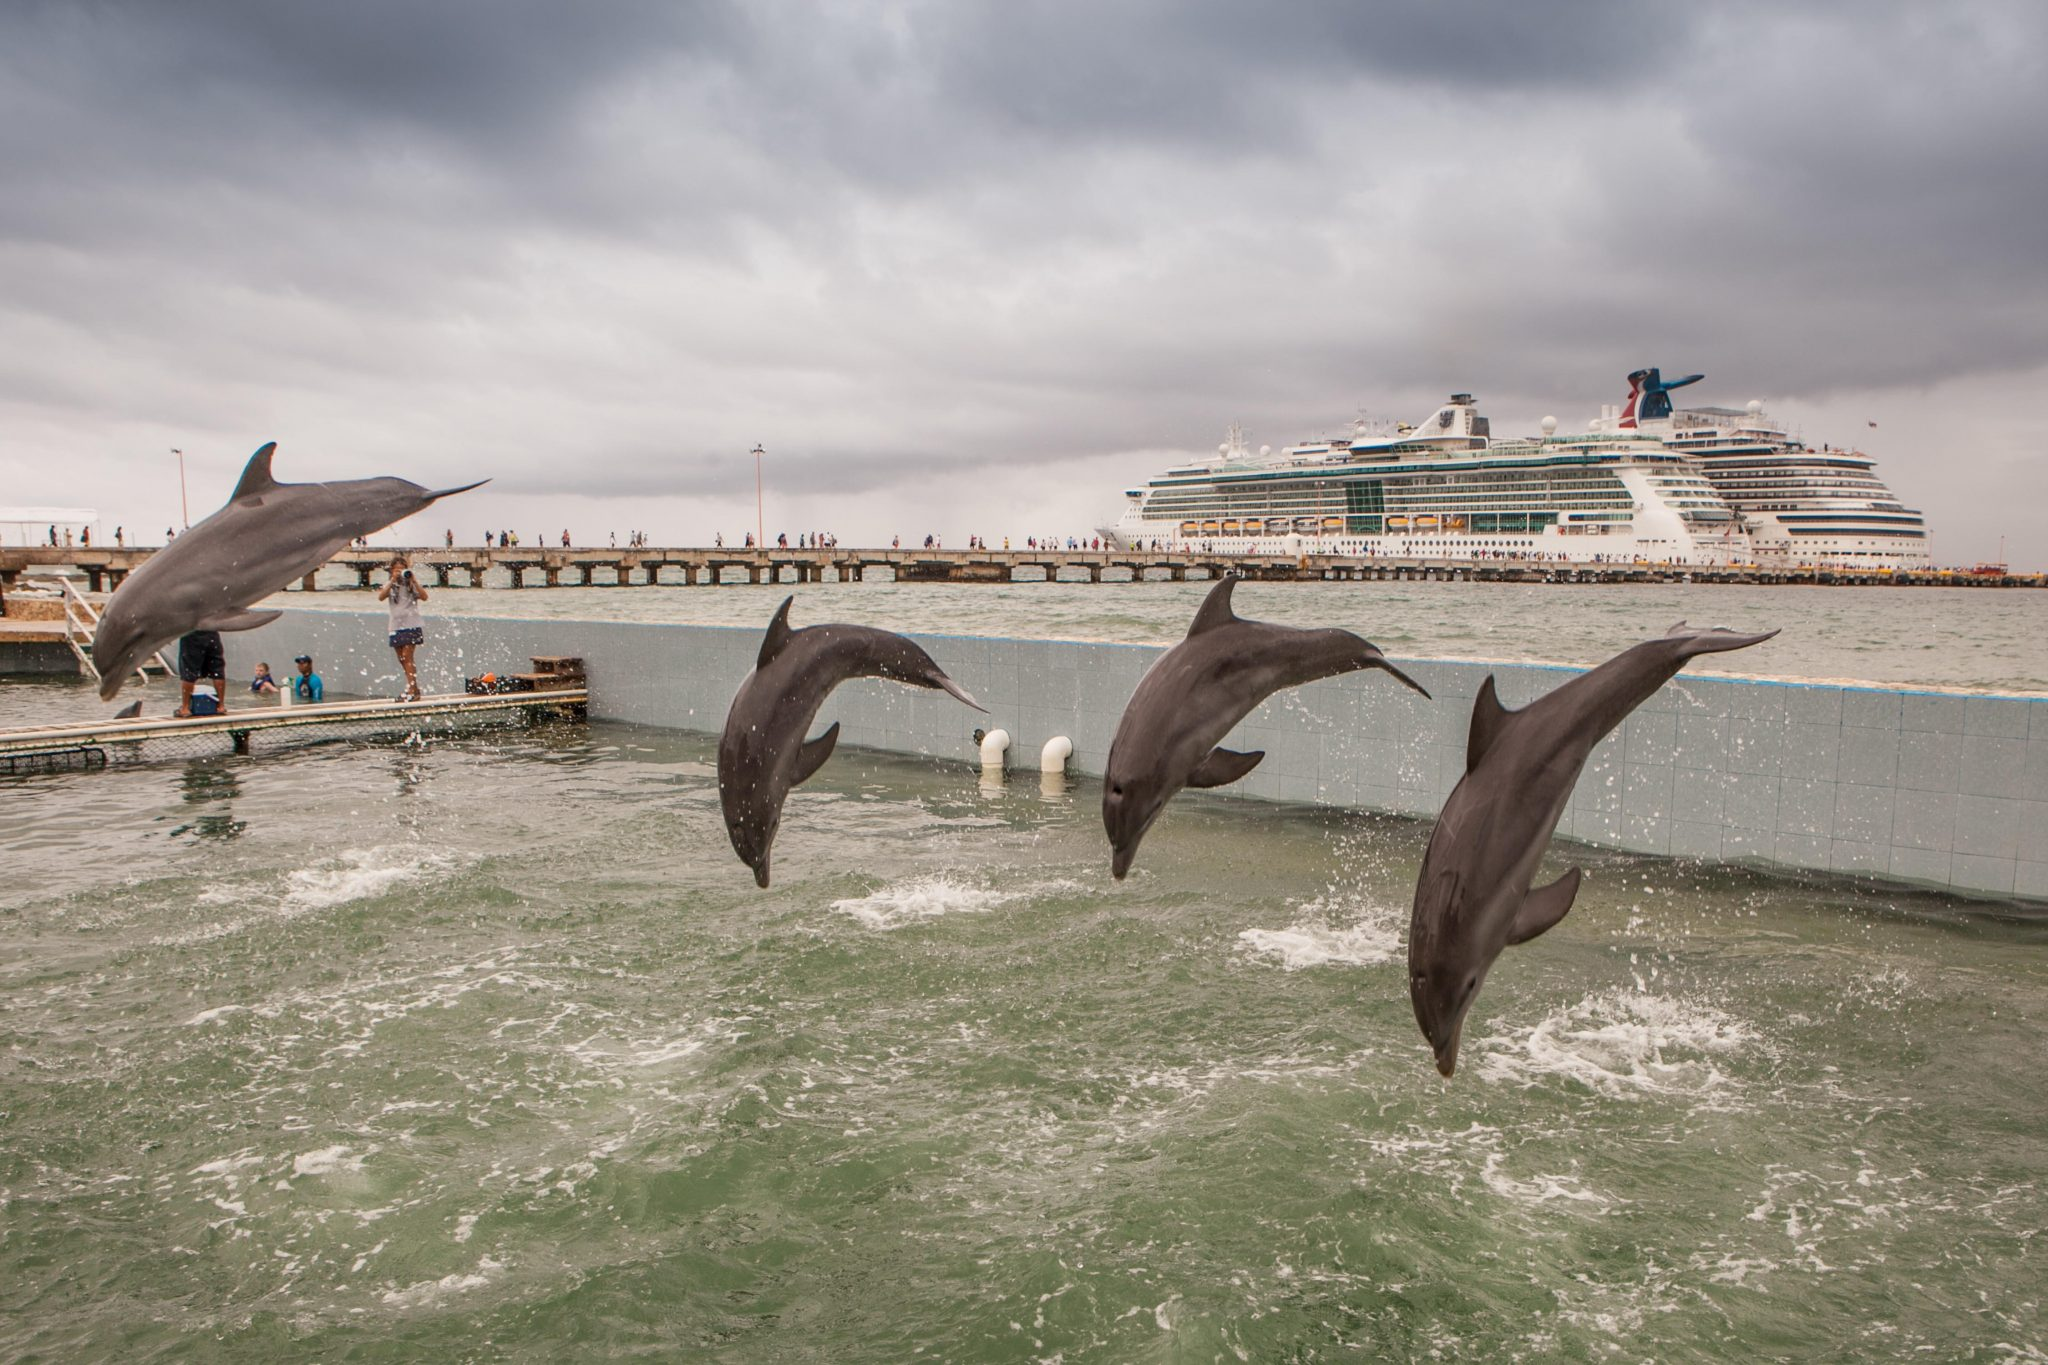 J0DR79 Captive dolphins perform for cruise passengers at the COSTA MAYA  Resort, MEXICO.